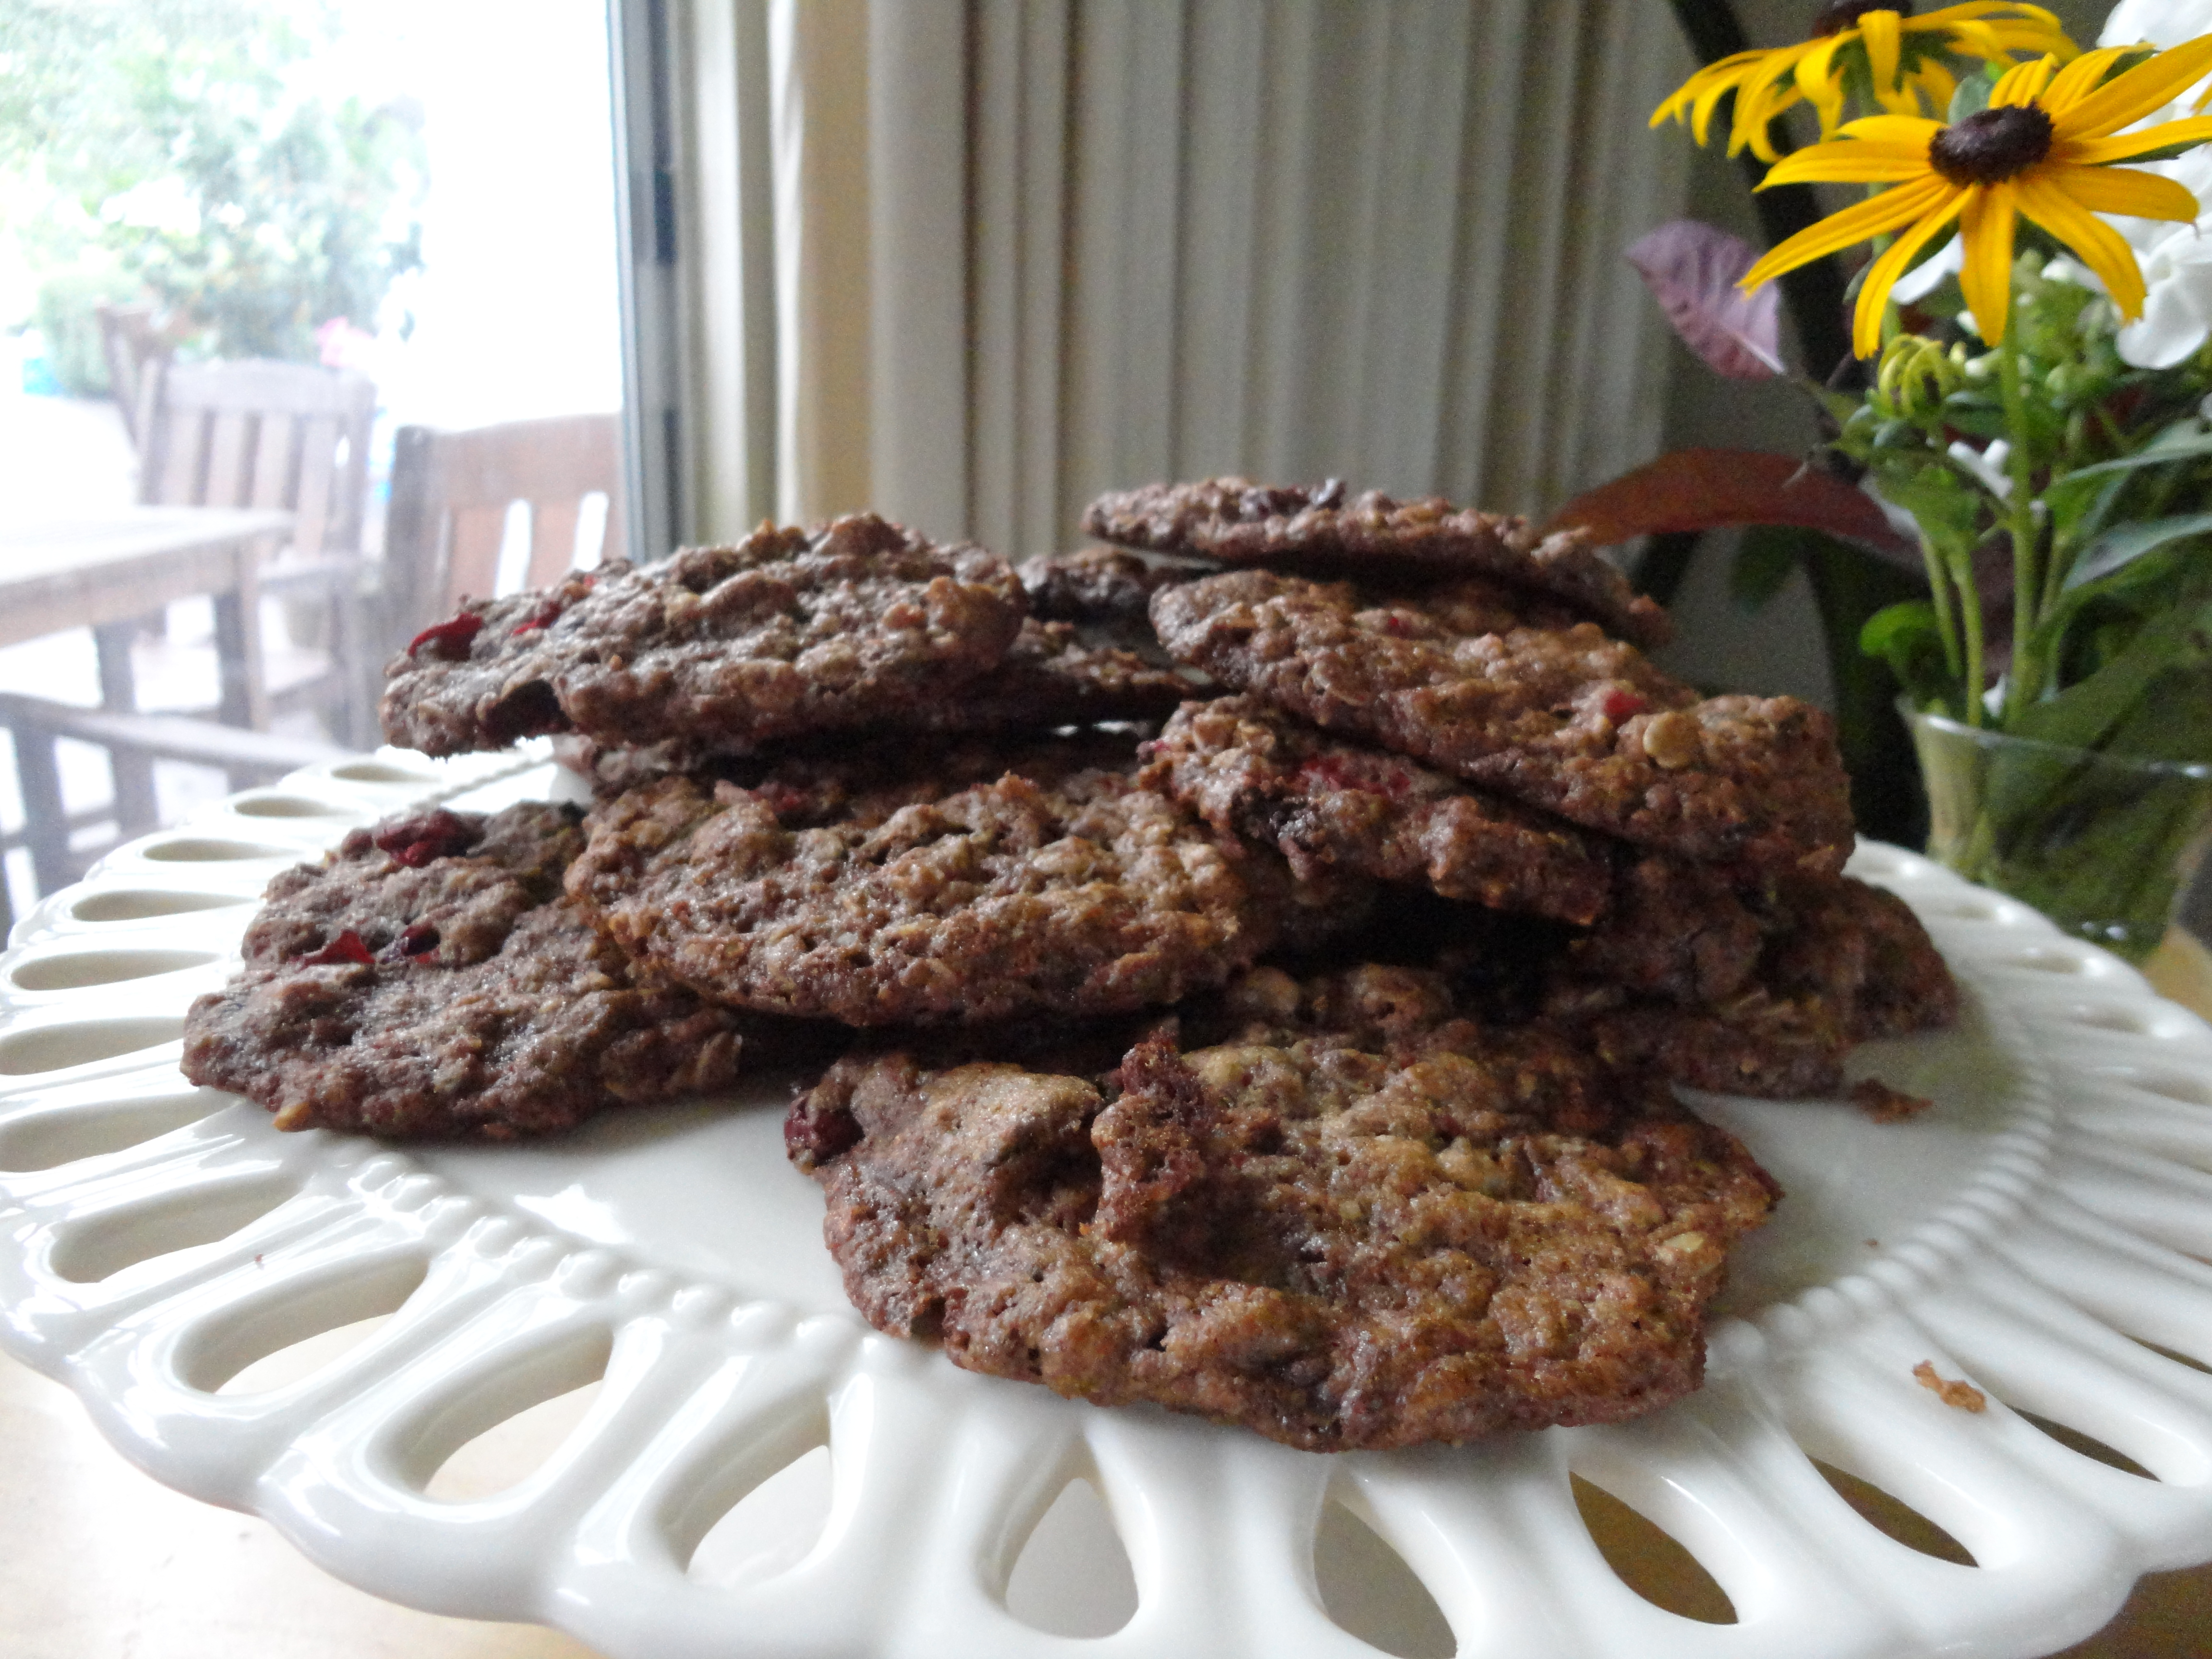 Oatmeal Cookies with Cranberries and Chocolate Chunks